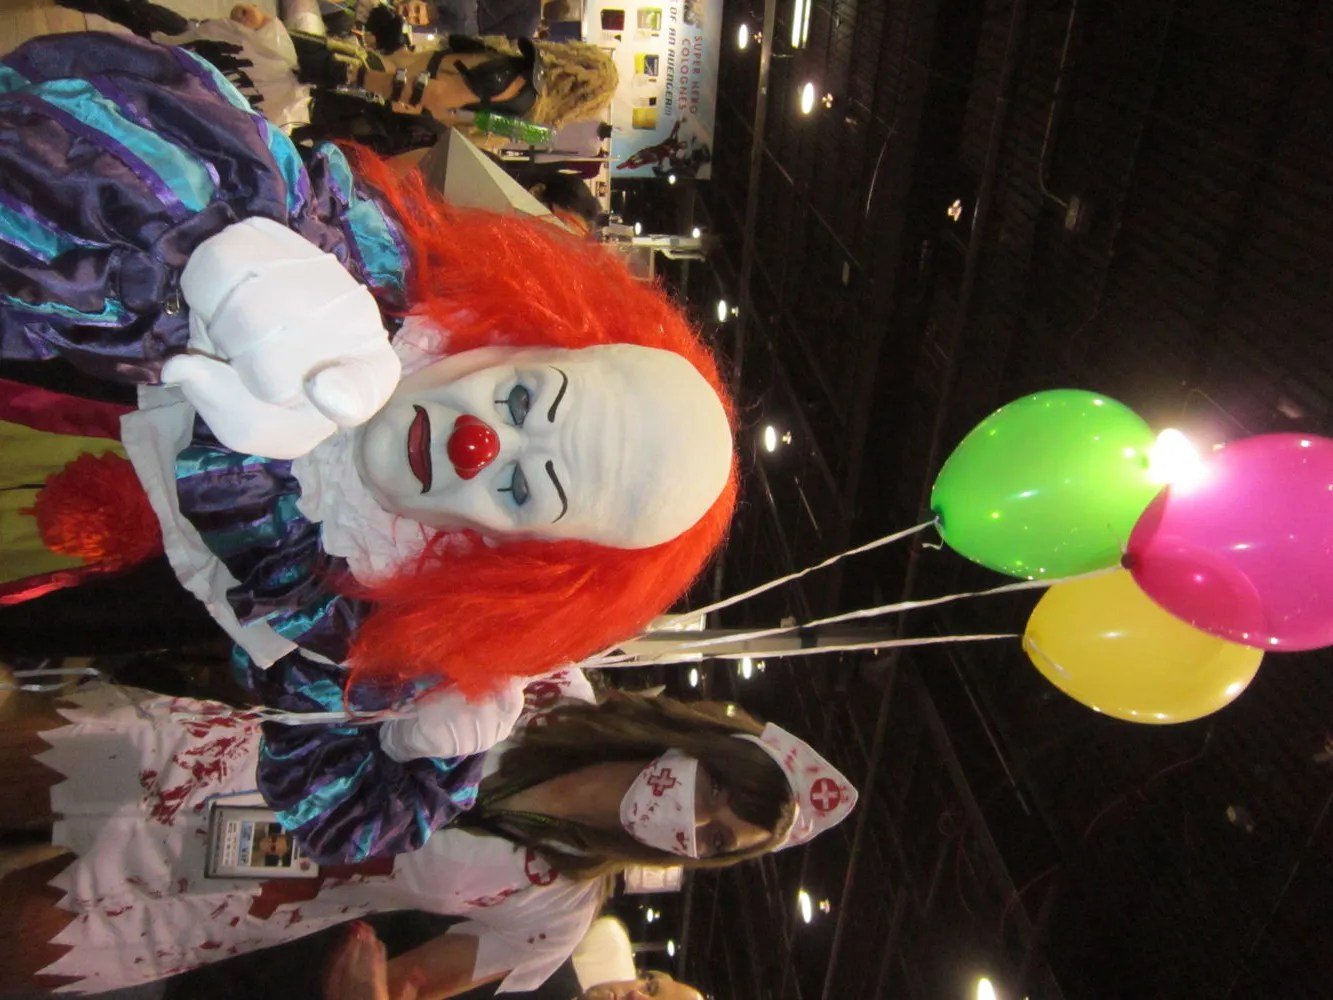 Pennywise is IT.